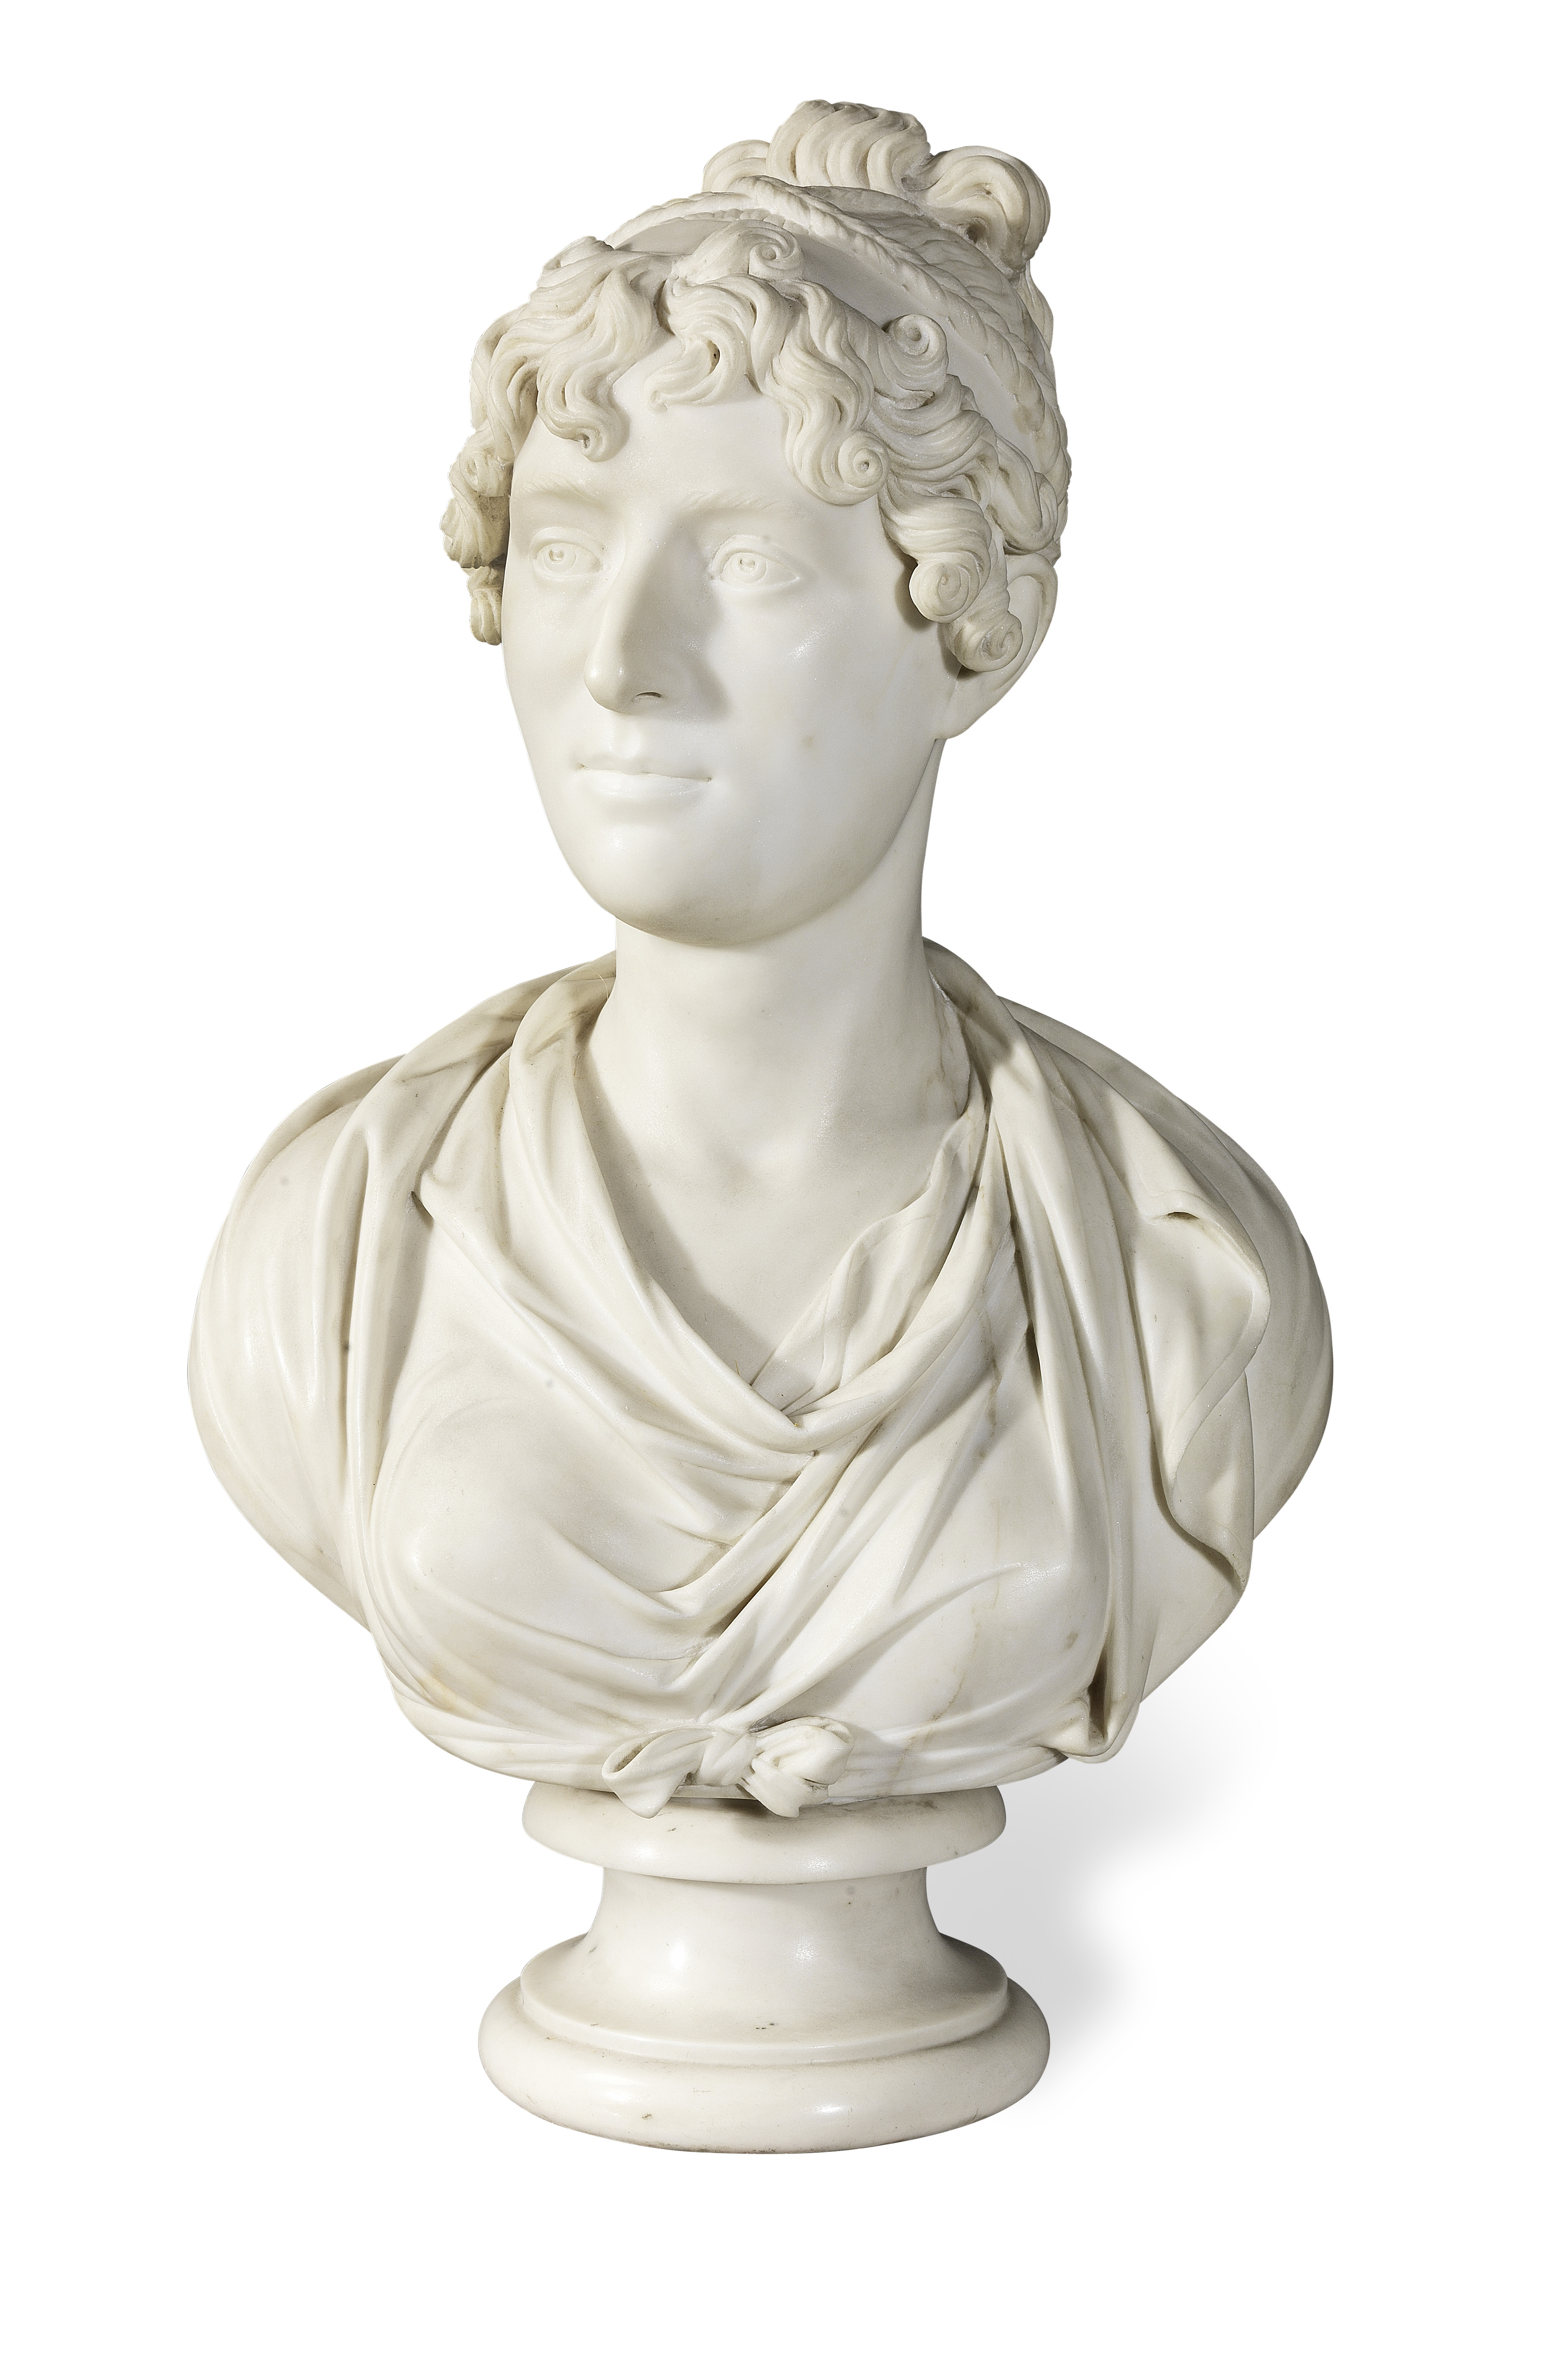 Lot 40 - Lewis Alexander Goblet (British, b. 1764, d. after 1826): A marble portrait bust of a lady, tradi...